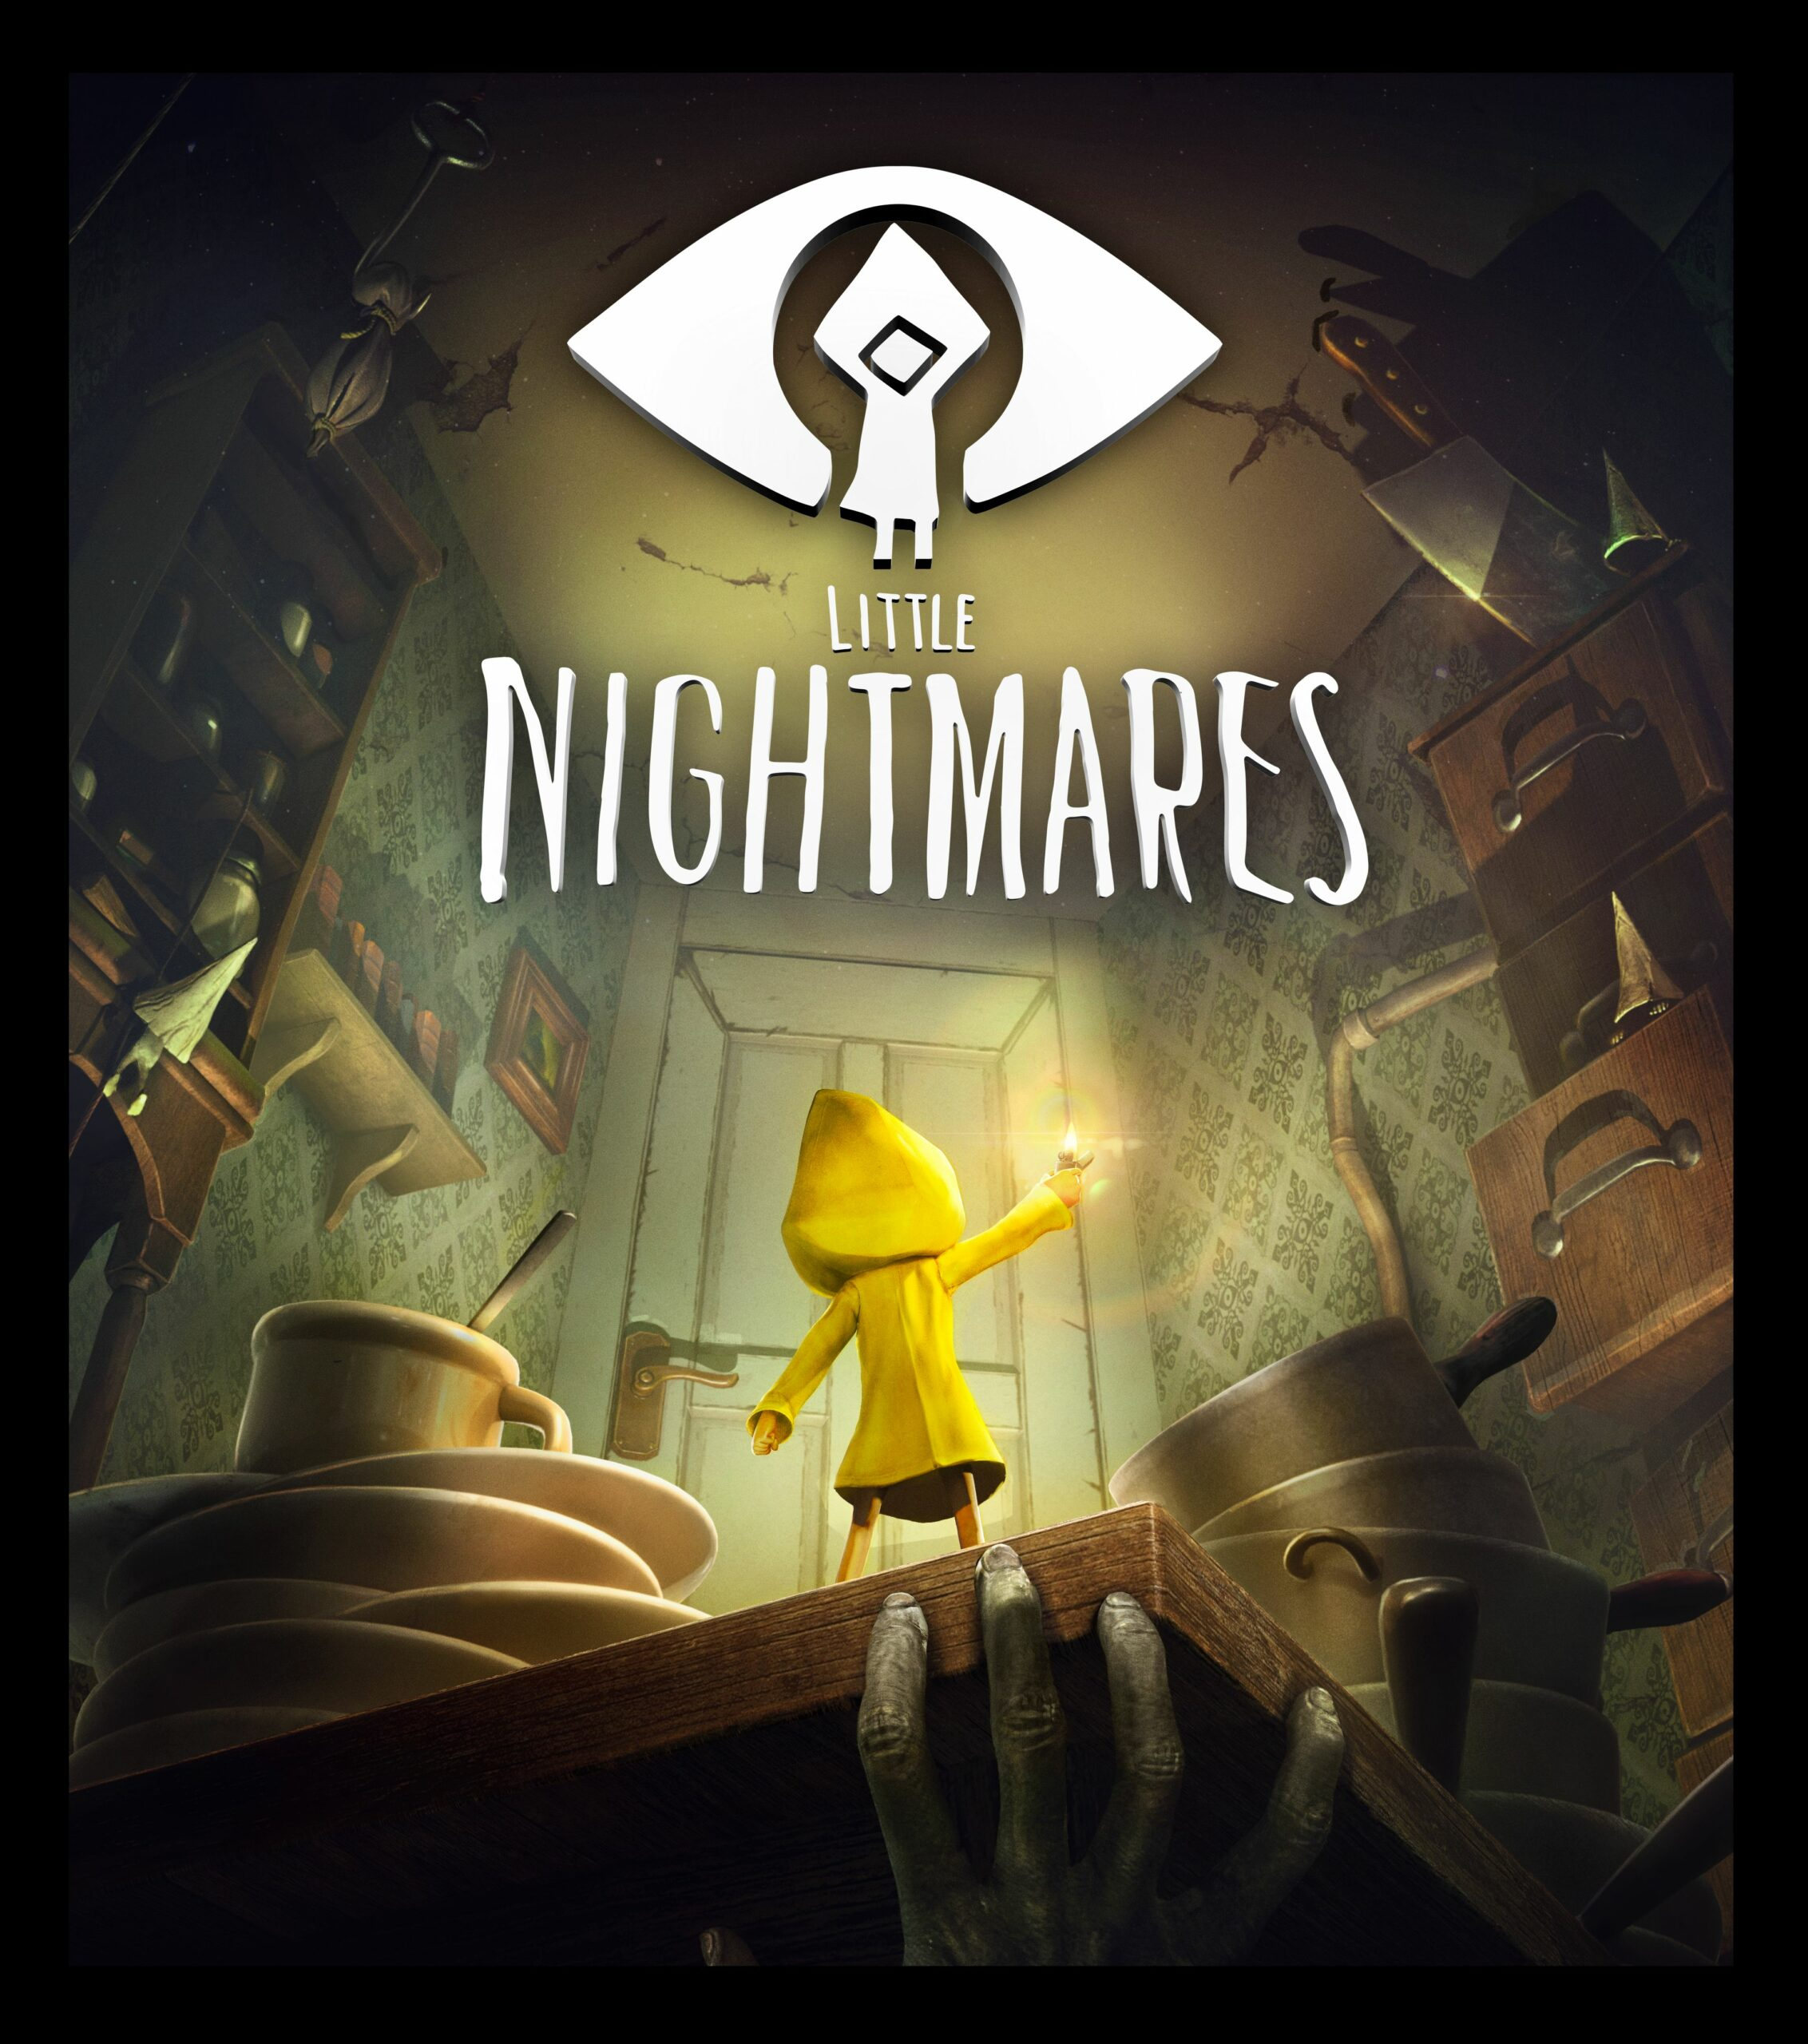 Little-Nightmares_2017_01-17-17_011